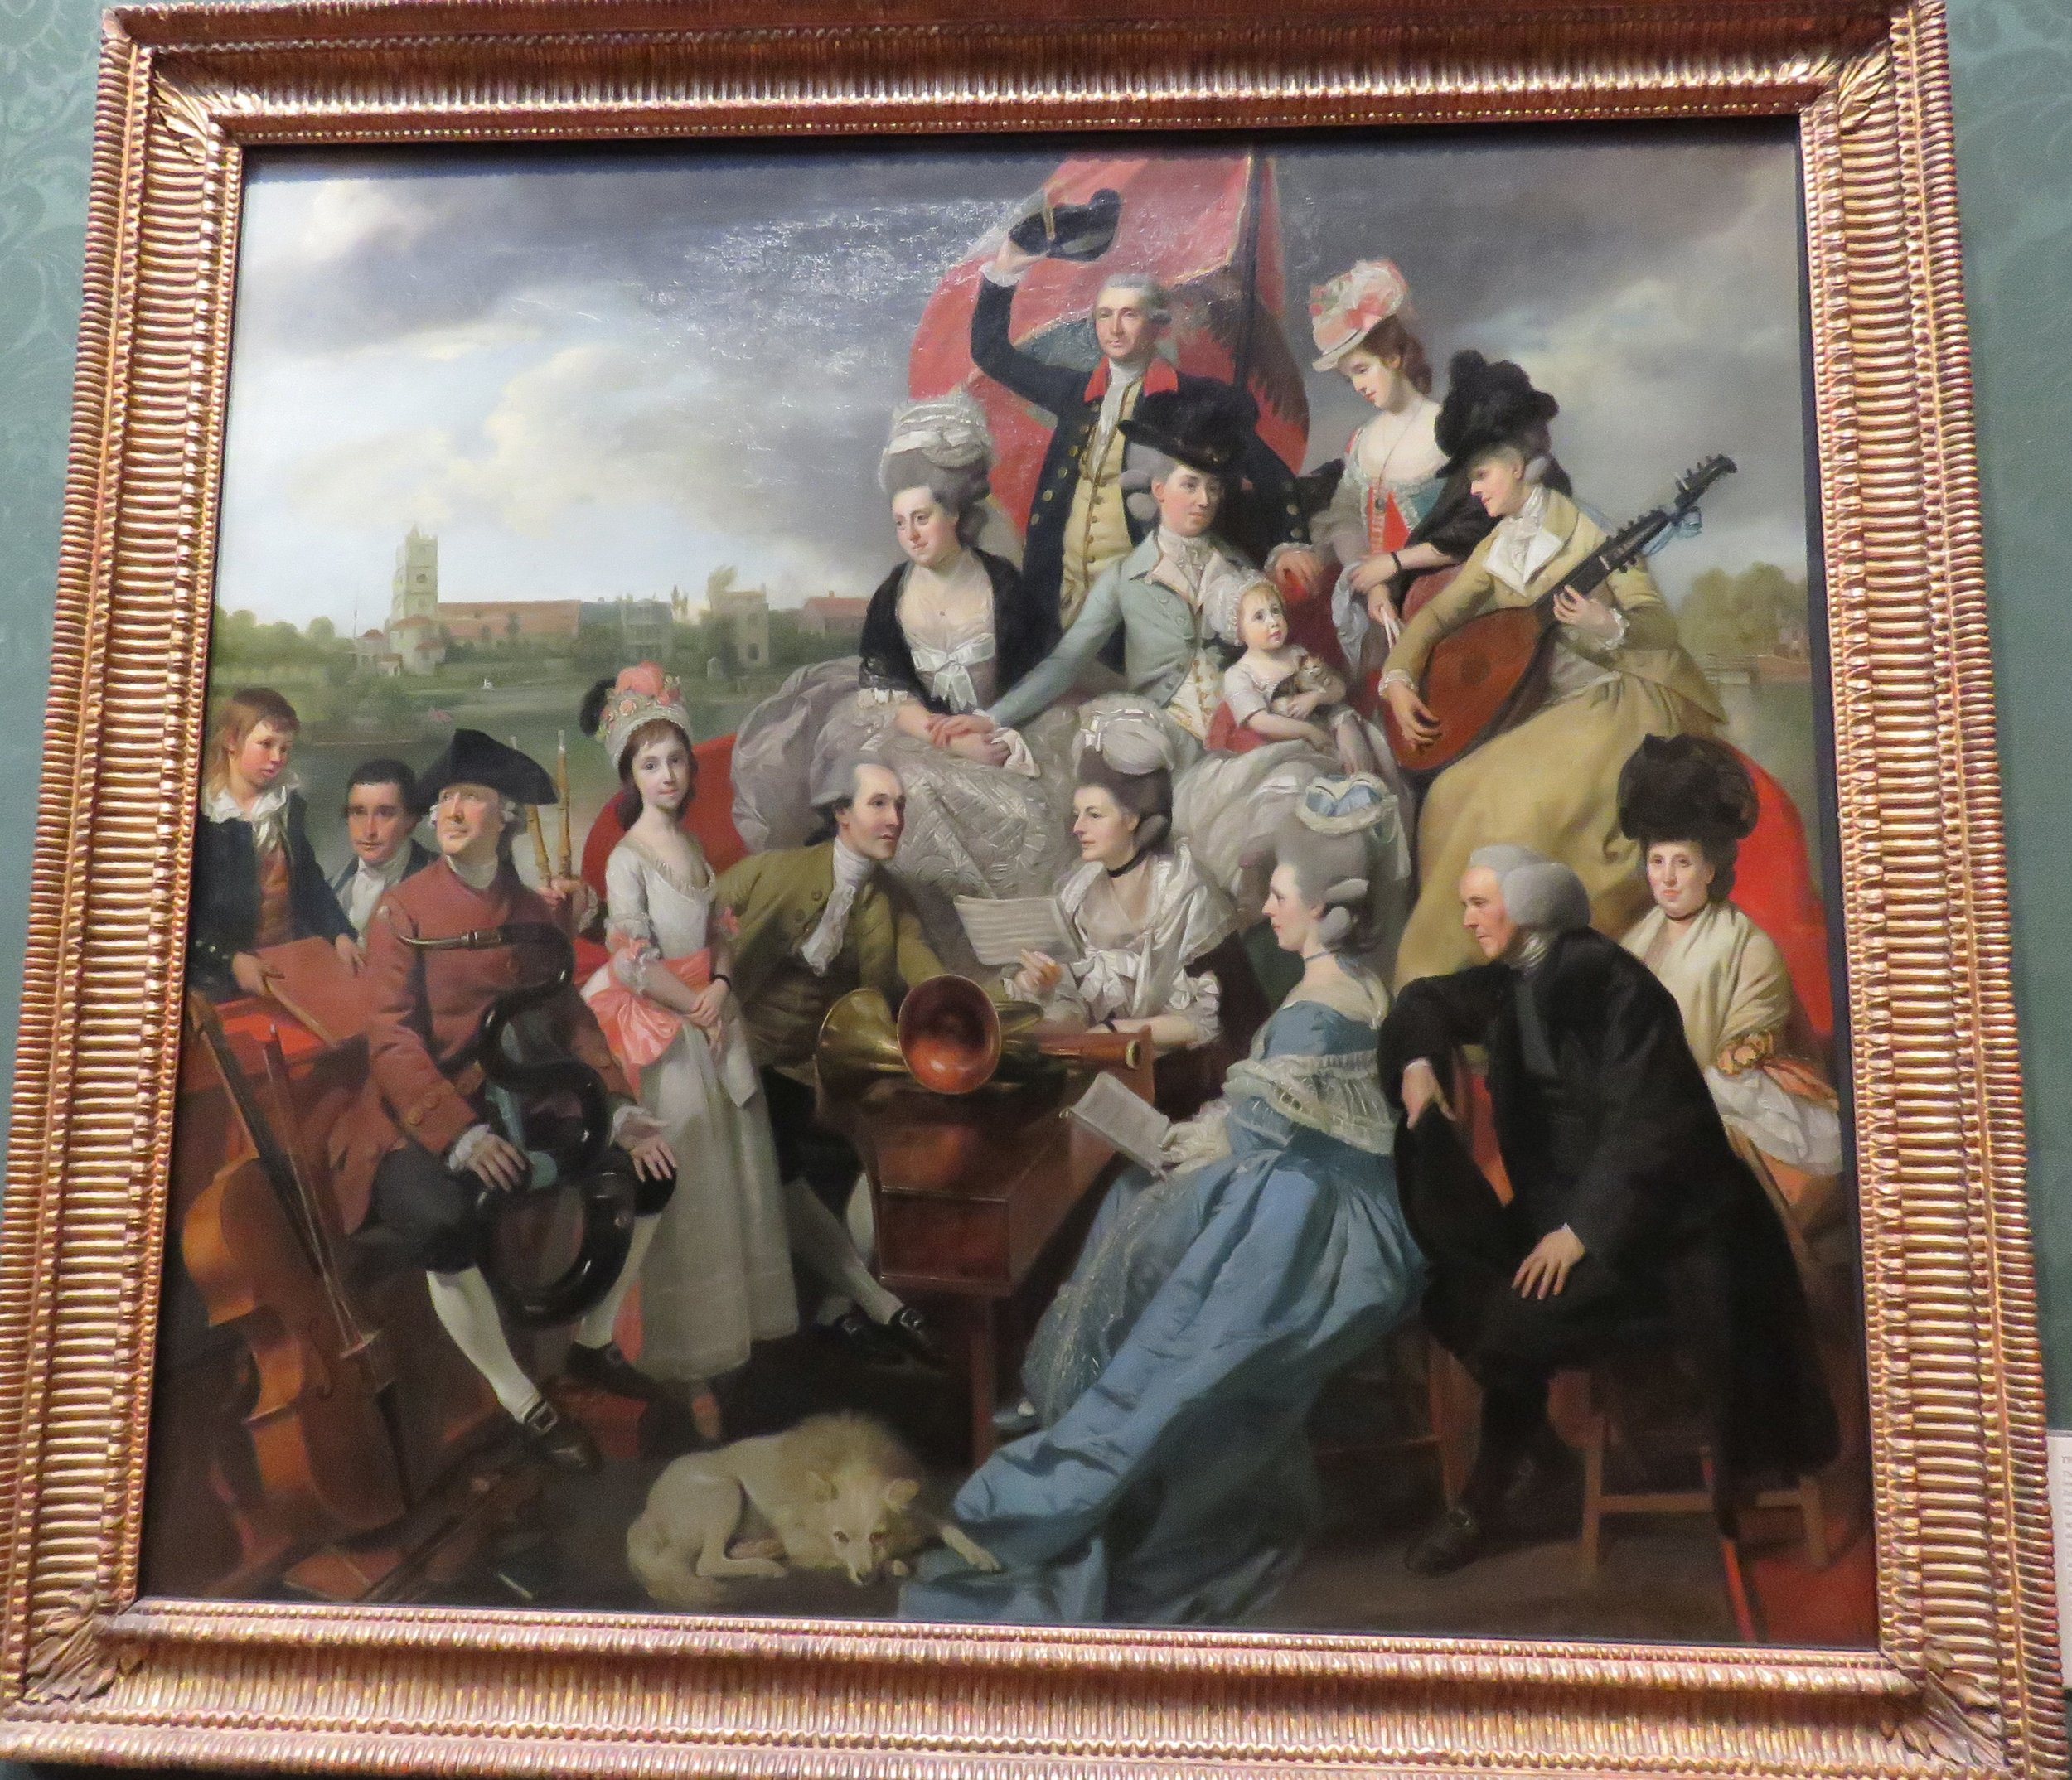 Early 18th century portrait of the Sharpe family orchestra.  So much fun.